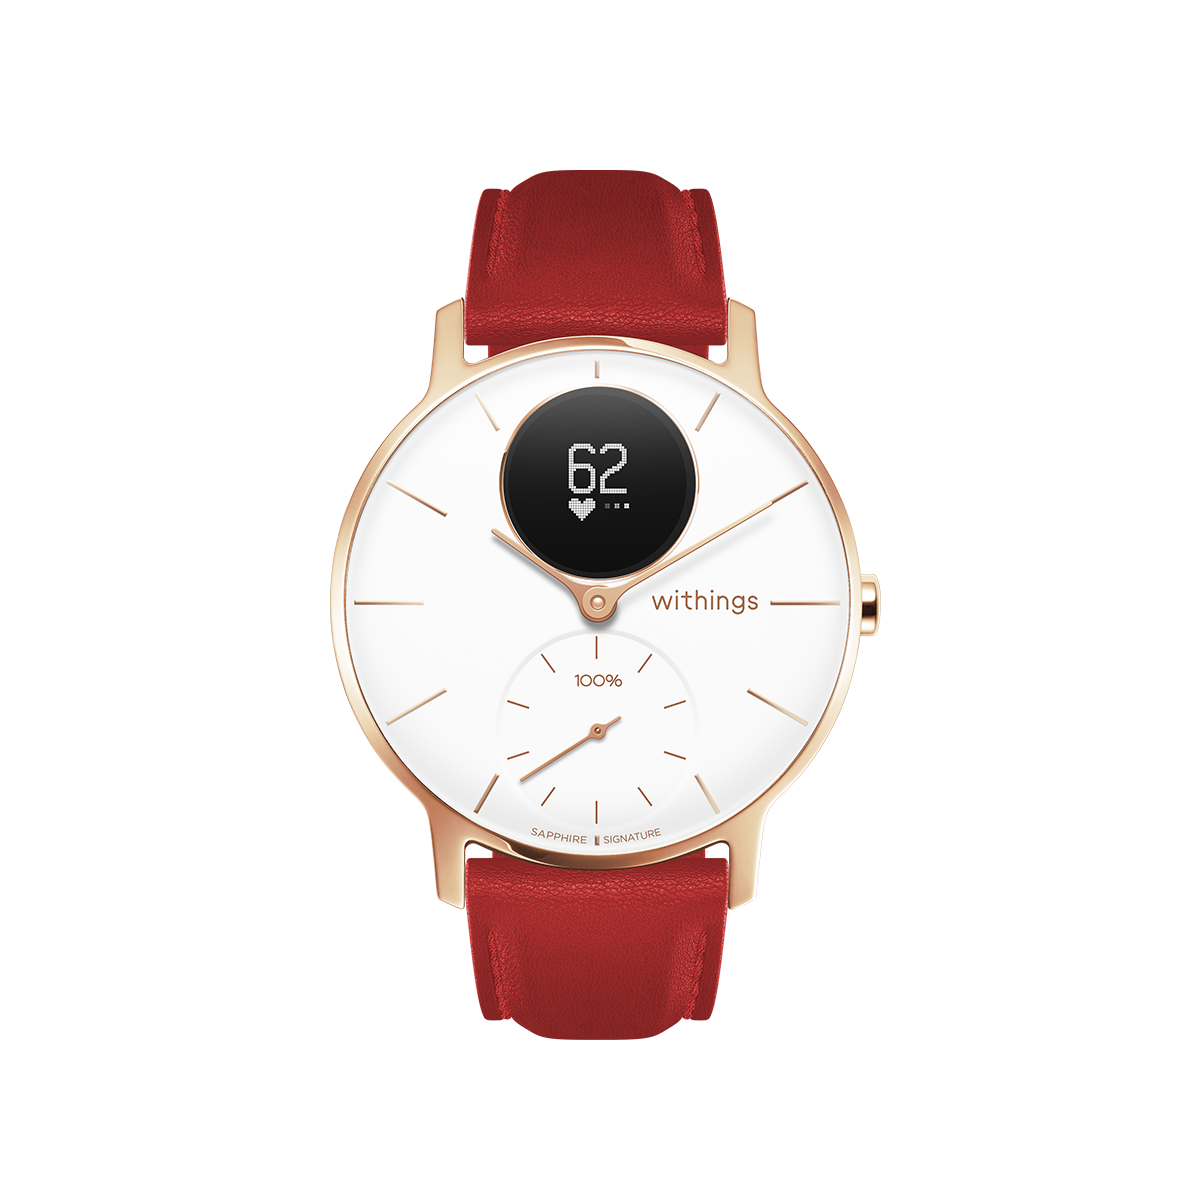 Withings Steel HR Sapphire Signature, 36mm, White & Rose Gold - Hybrid Smartwatch - Heart rate & Smartphone notifications - Withings Official Store